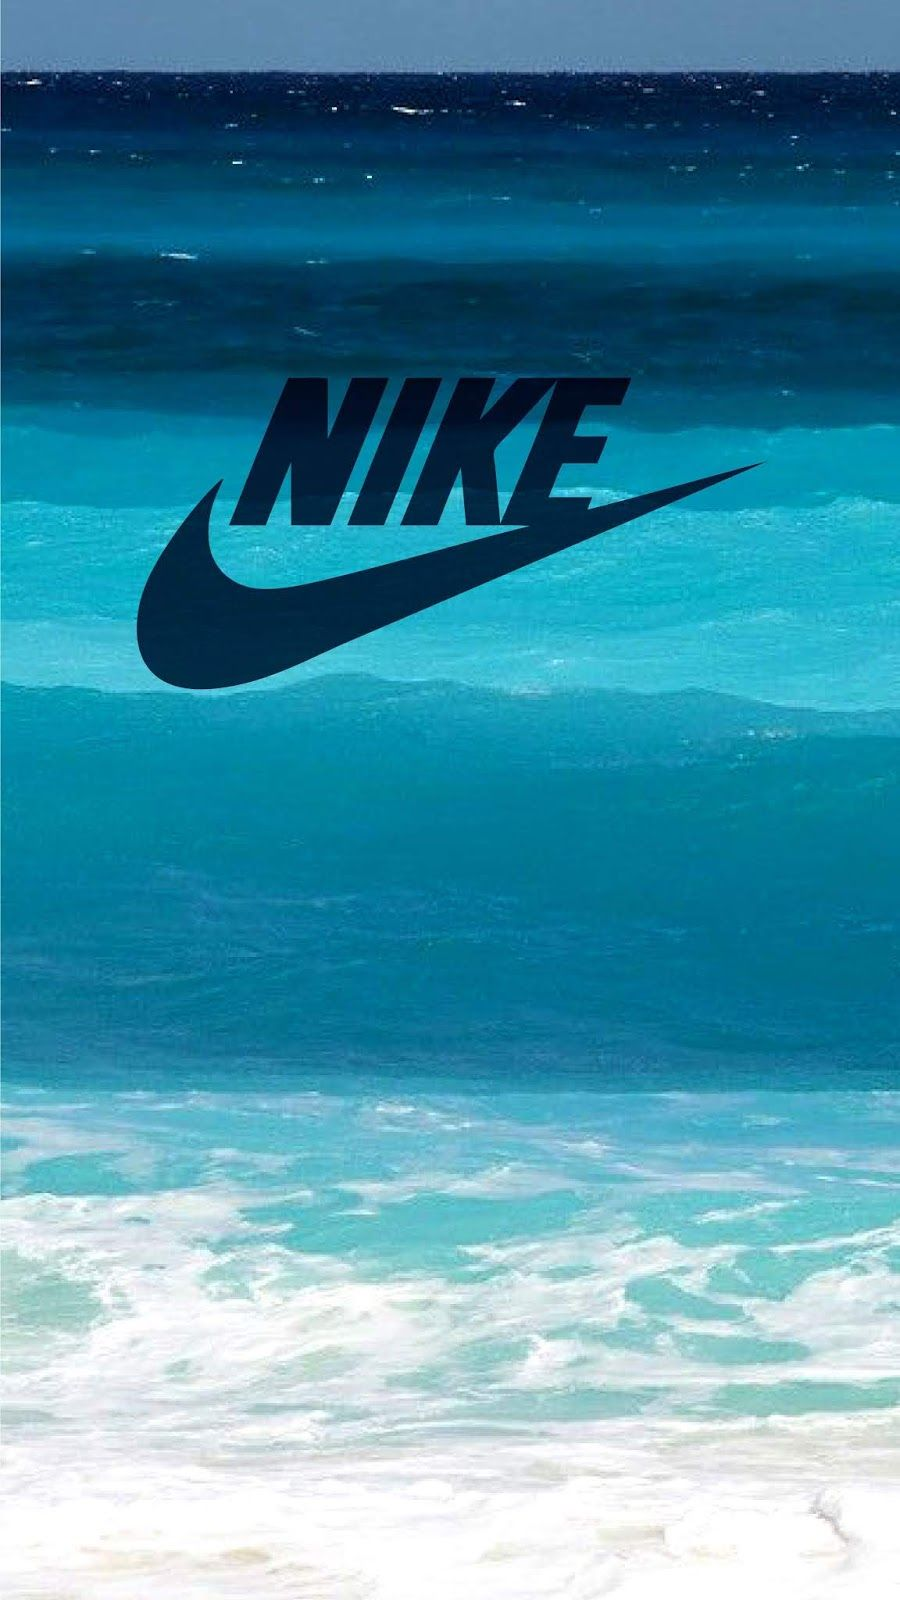 Nike Logo Hd Wallpapers For Iphone X Iphone Xr Iphone 11 Etc Cool Nike Wallpapers Nike Wallpaper Nike Wallpaper Iphone